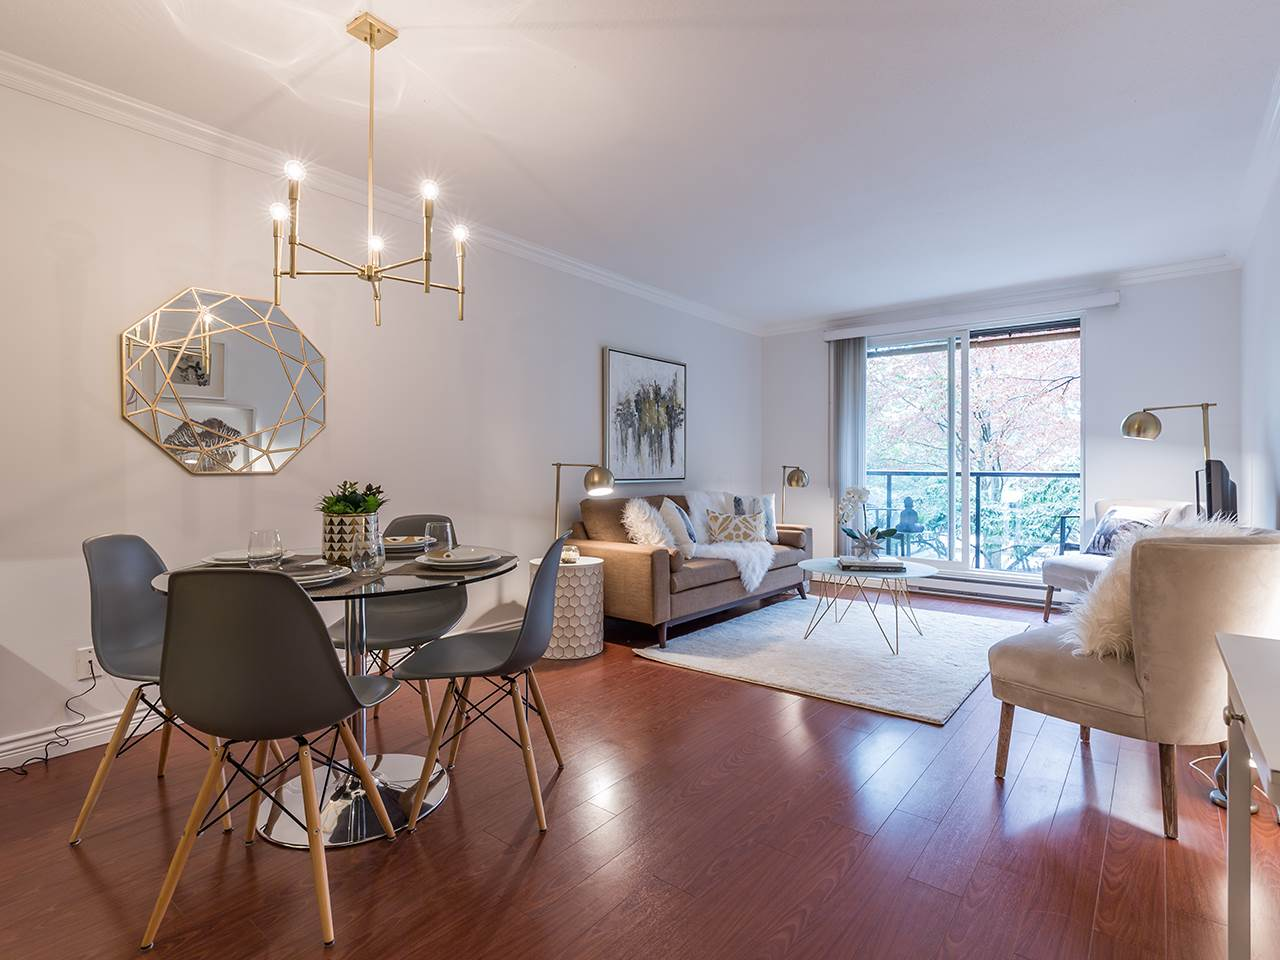 Condo Apartment at 219 1550 BARCLAY STREET, Unit 219, Vancouver West, British Columbia. Image 1